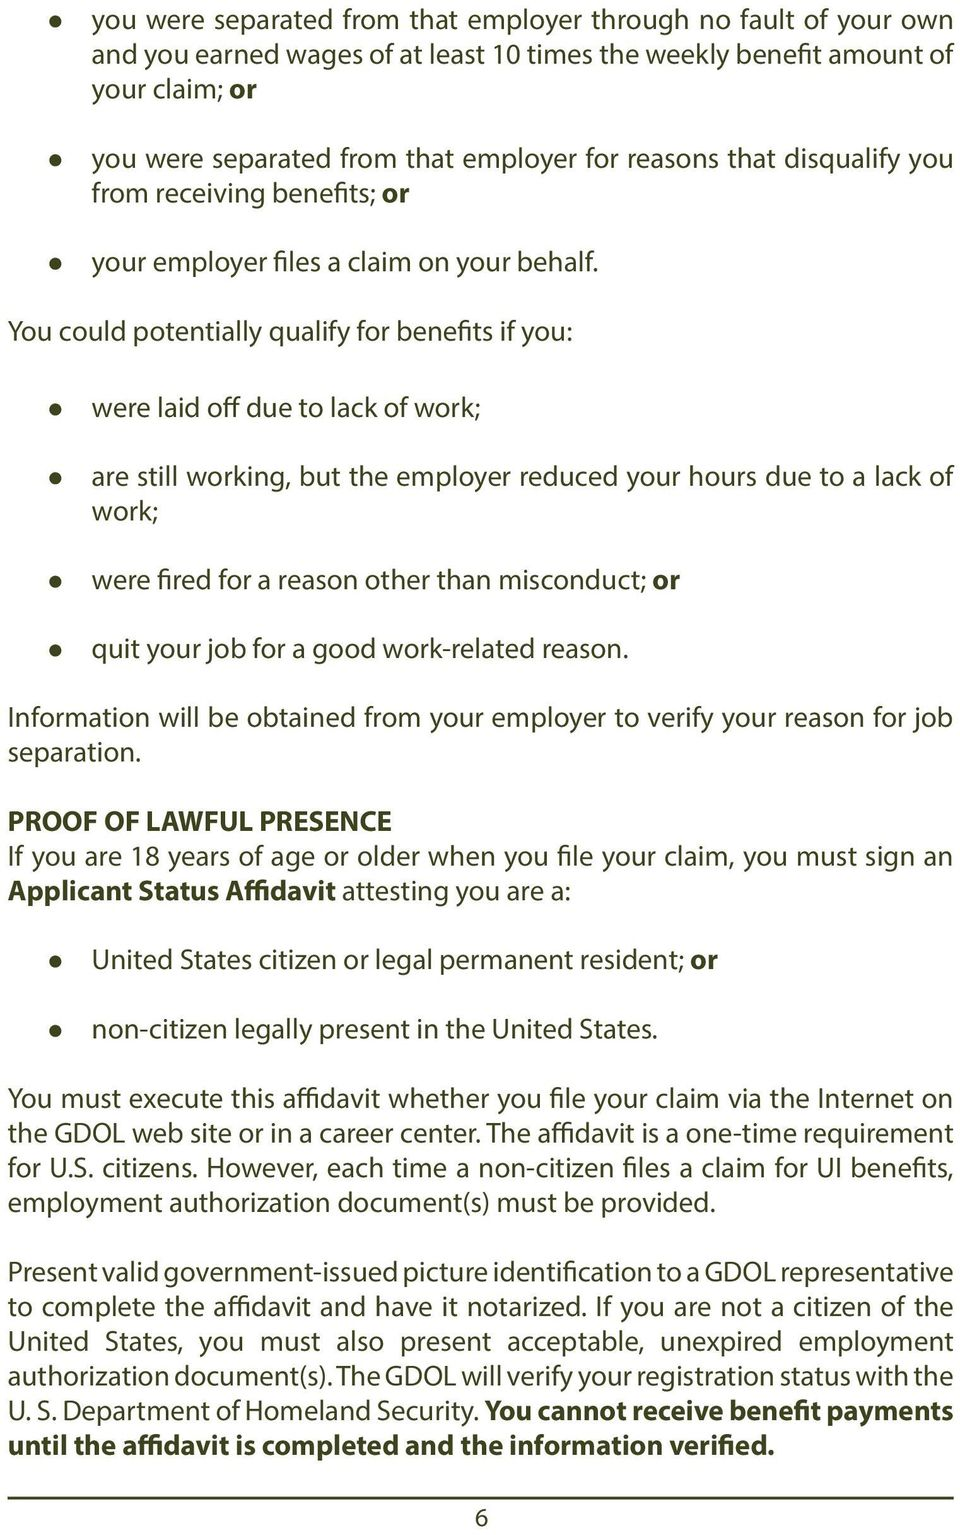 You could potentially qualify for benefits if you: were laid off due to lack of work; are still working, but the employer reduced your hours due to a lack of work; were fired for a reason other than